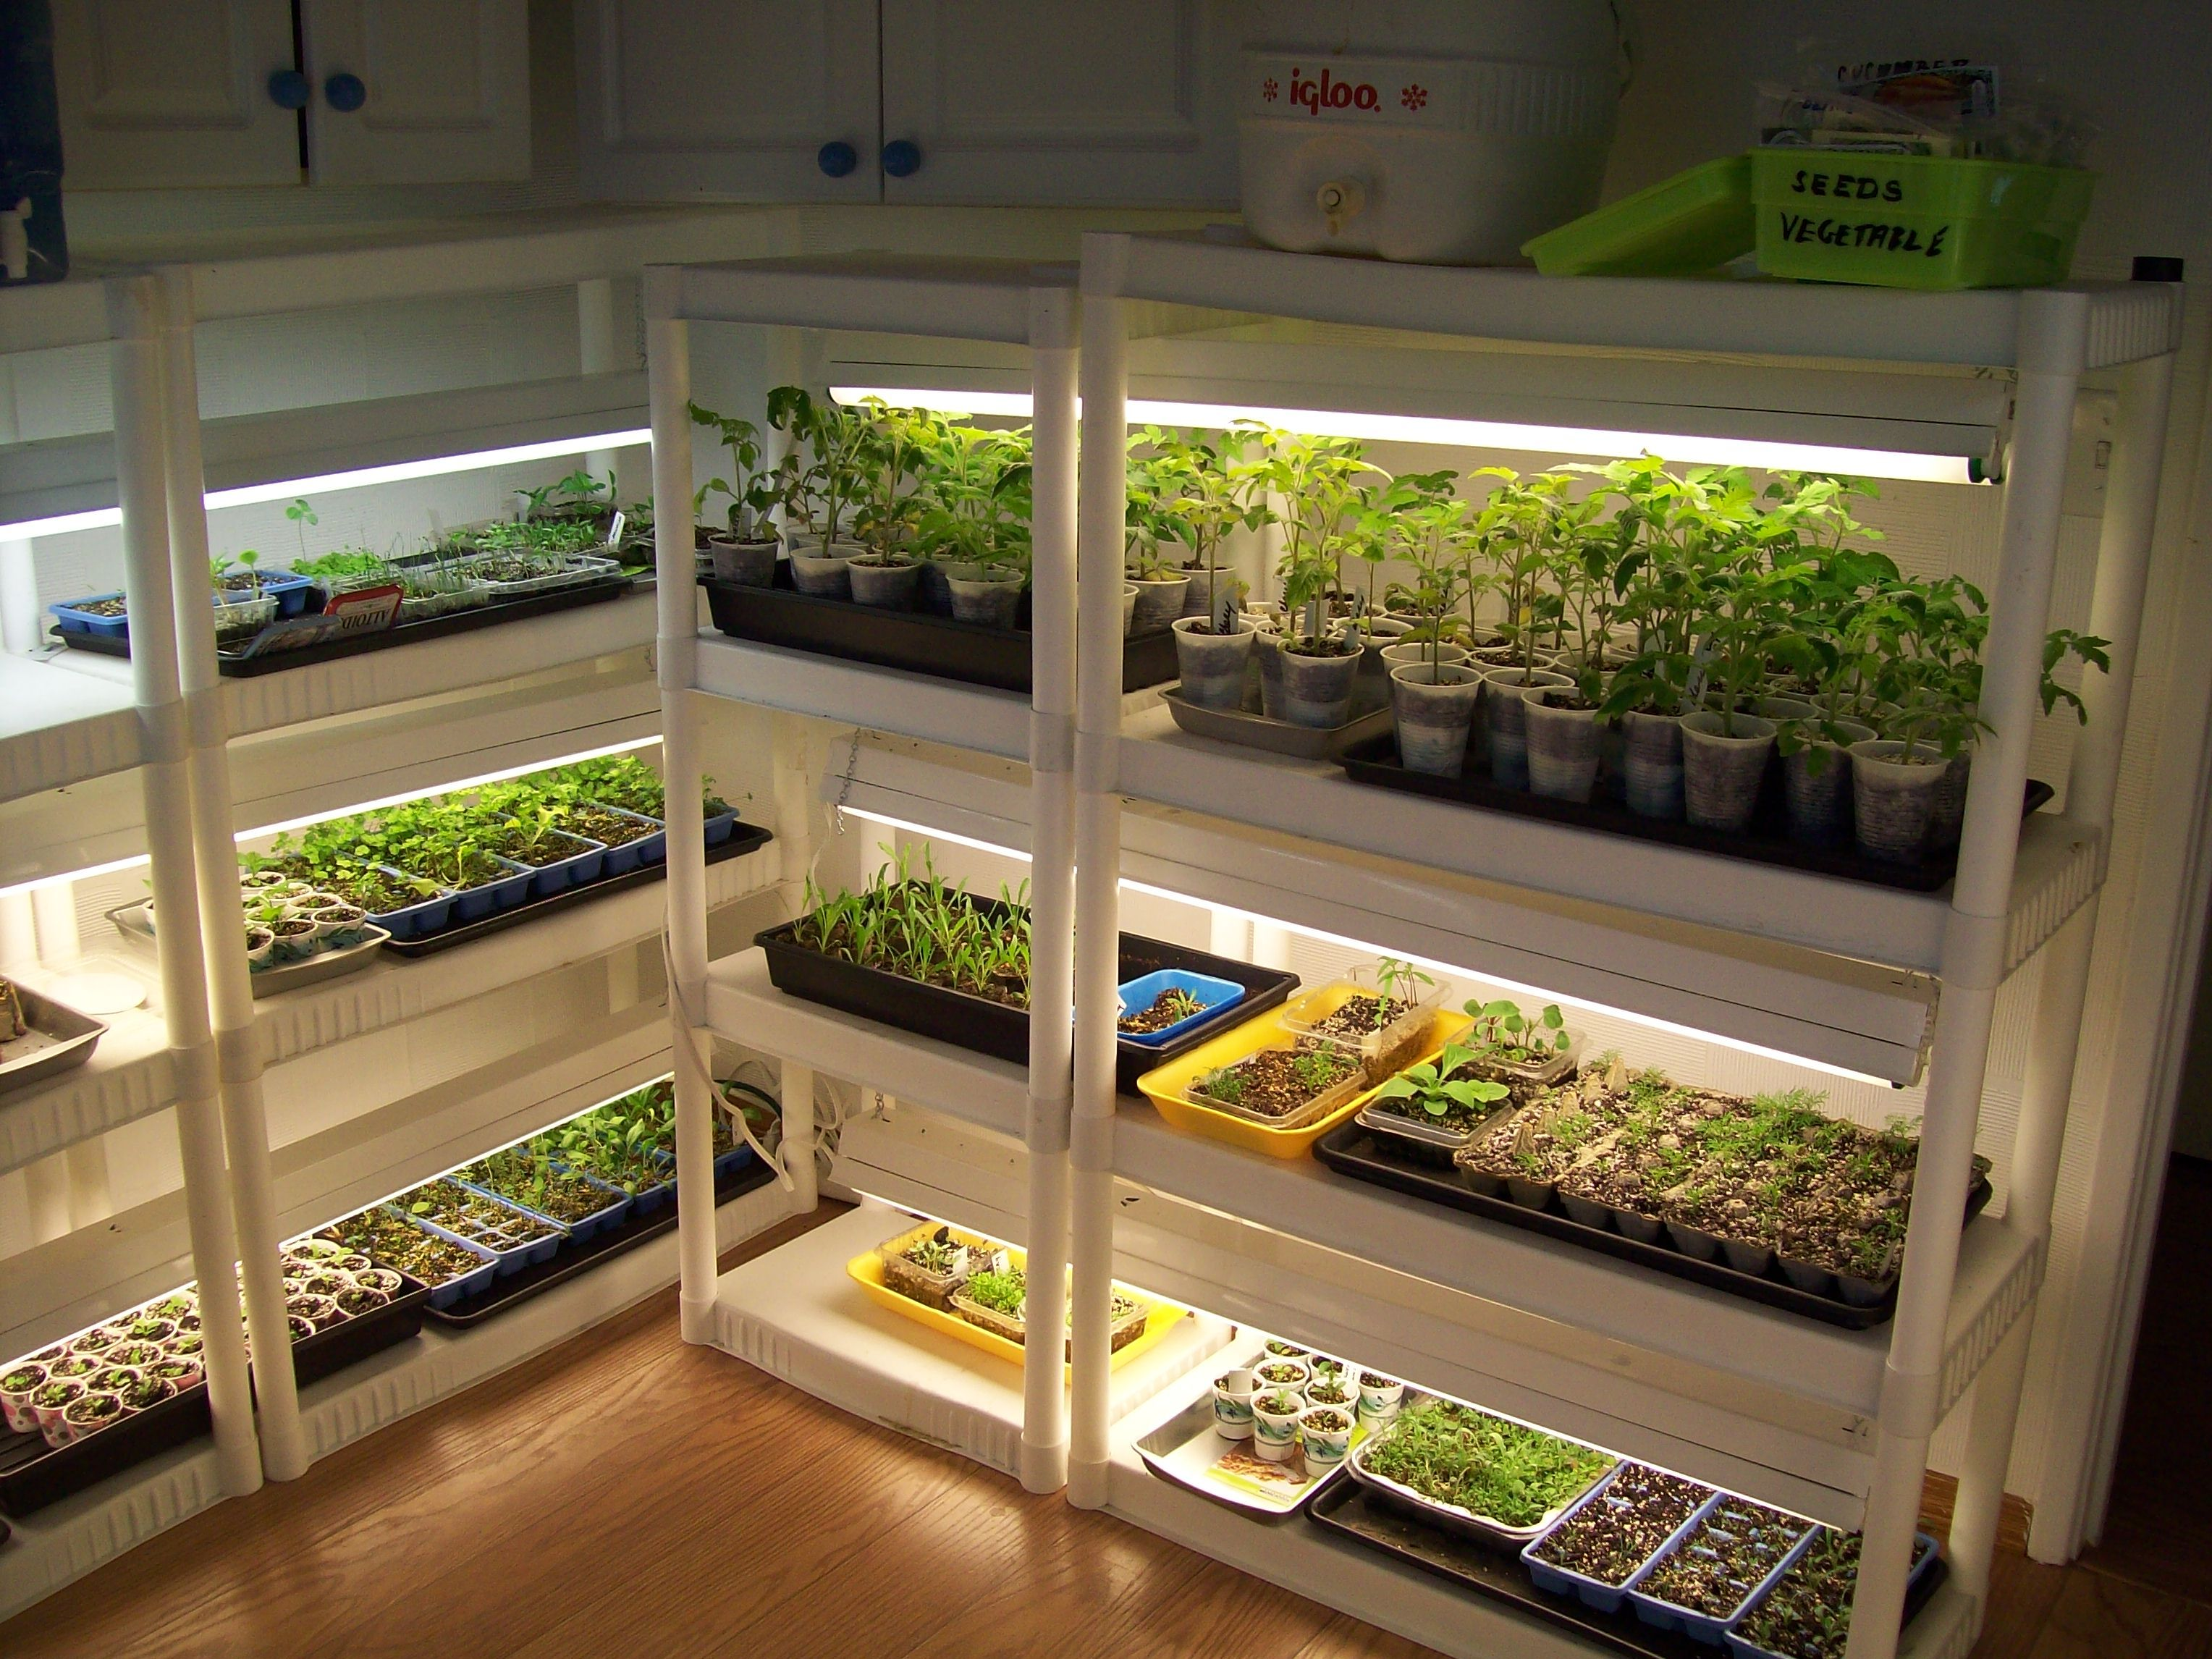 cheap snap together shelves and shop lights make for a reasonable indoor greenhouse and you can. Black Bedroom Furniture Sets. Home Design Ideas